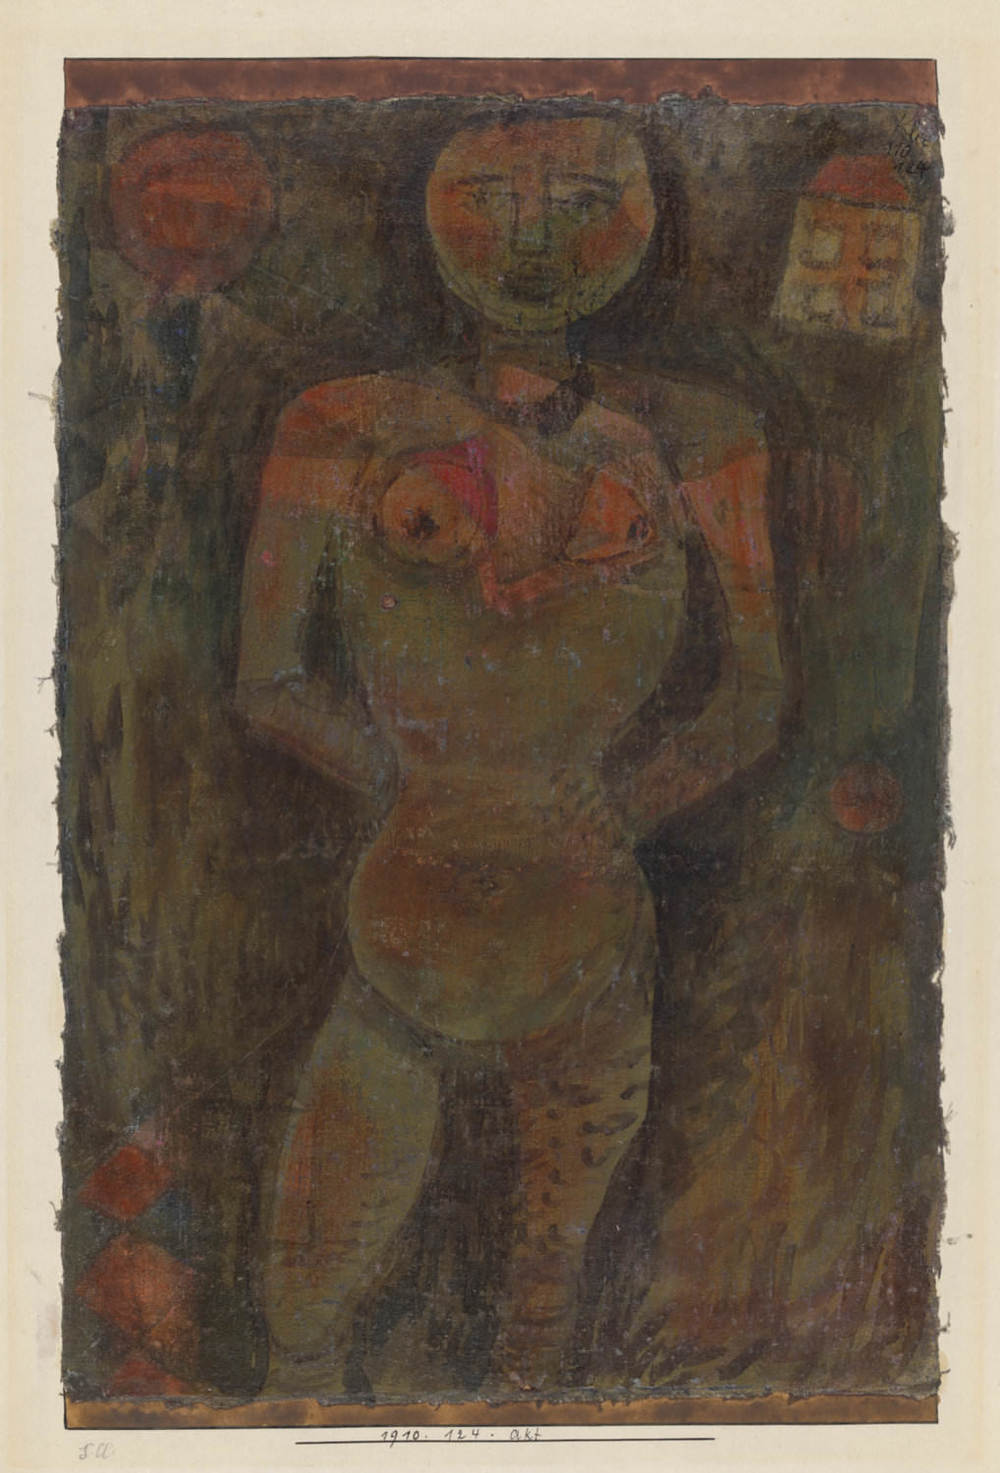 Paul Klee,  Akt, 1910, 124,  Nude, oil on muslin on cardboard, 38,9 x 25 cm, Zentrum Paul Klee, Bern © Zentrum Paul Klee, Bern, Bildarchiv